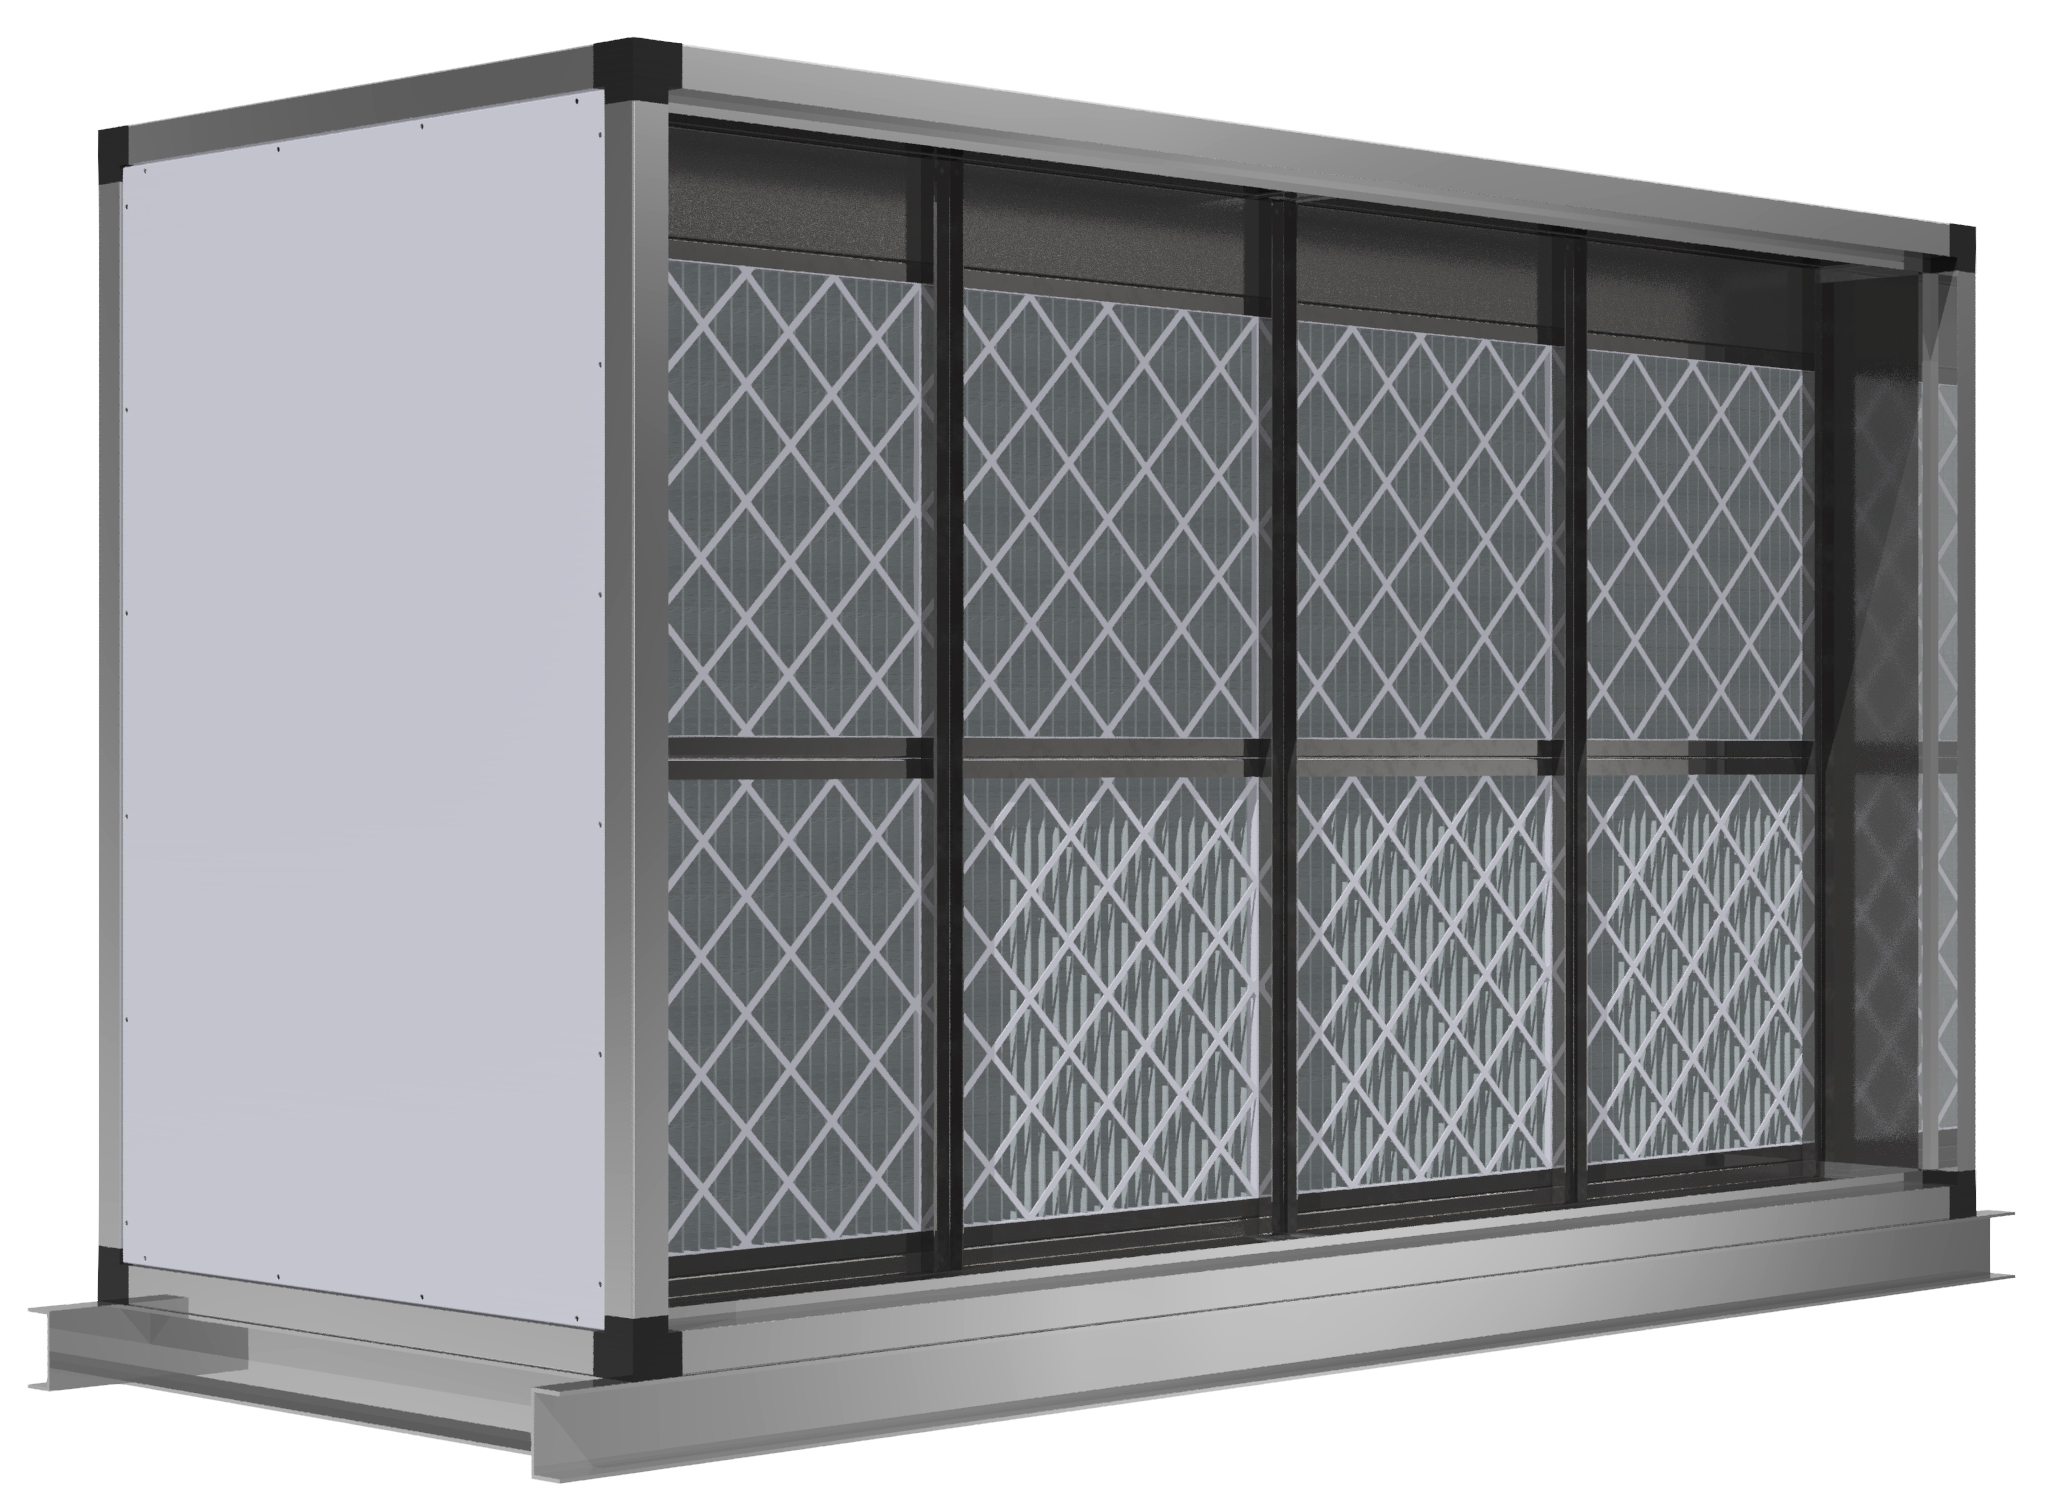 Air Filtration System - Filtration section 2